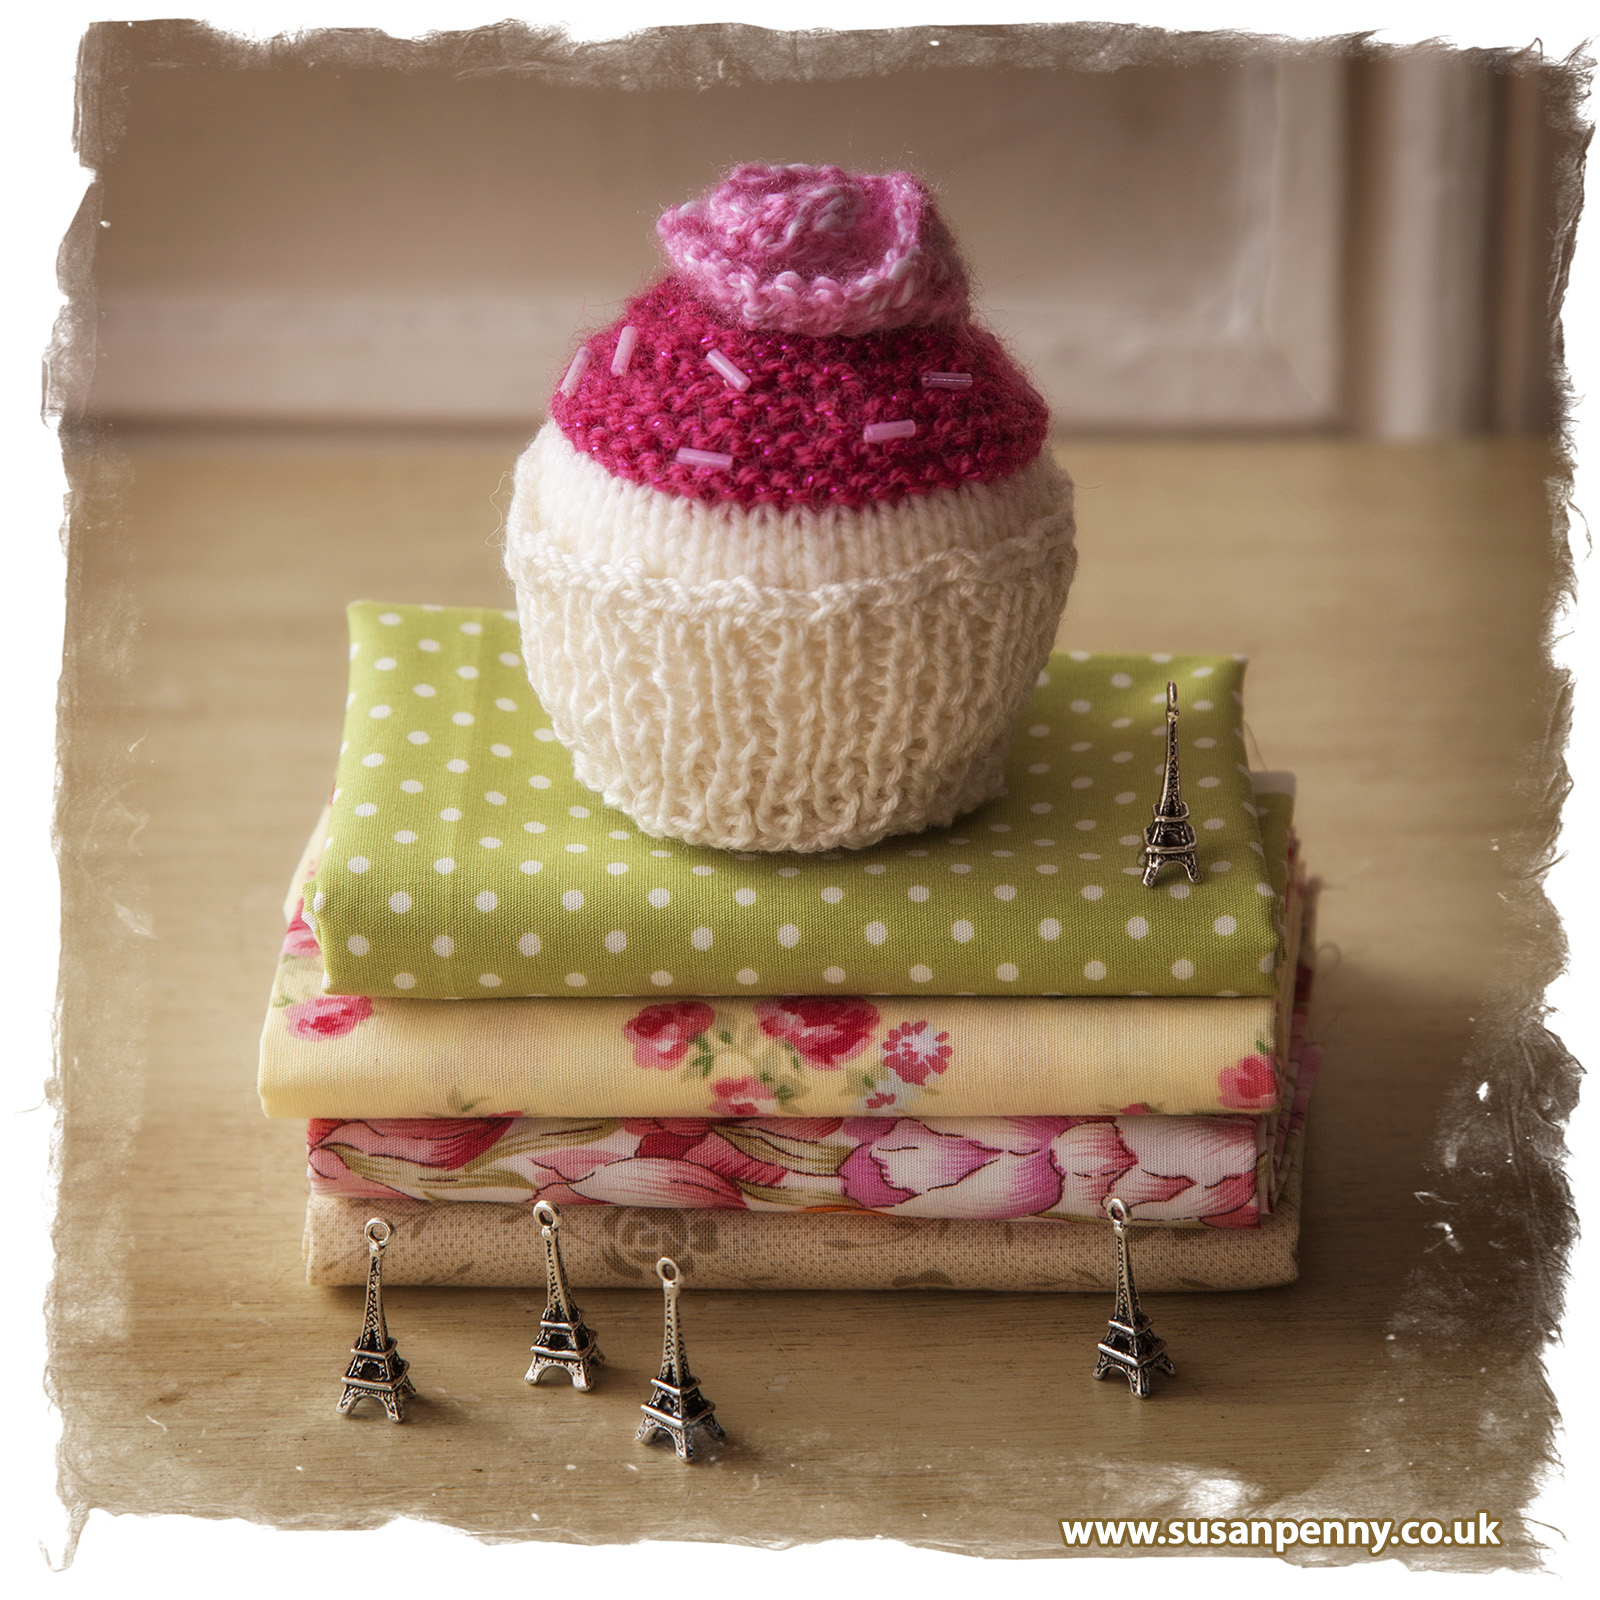 Knitted cupcakes for ETSY